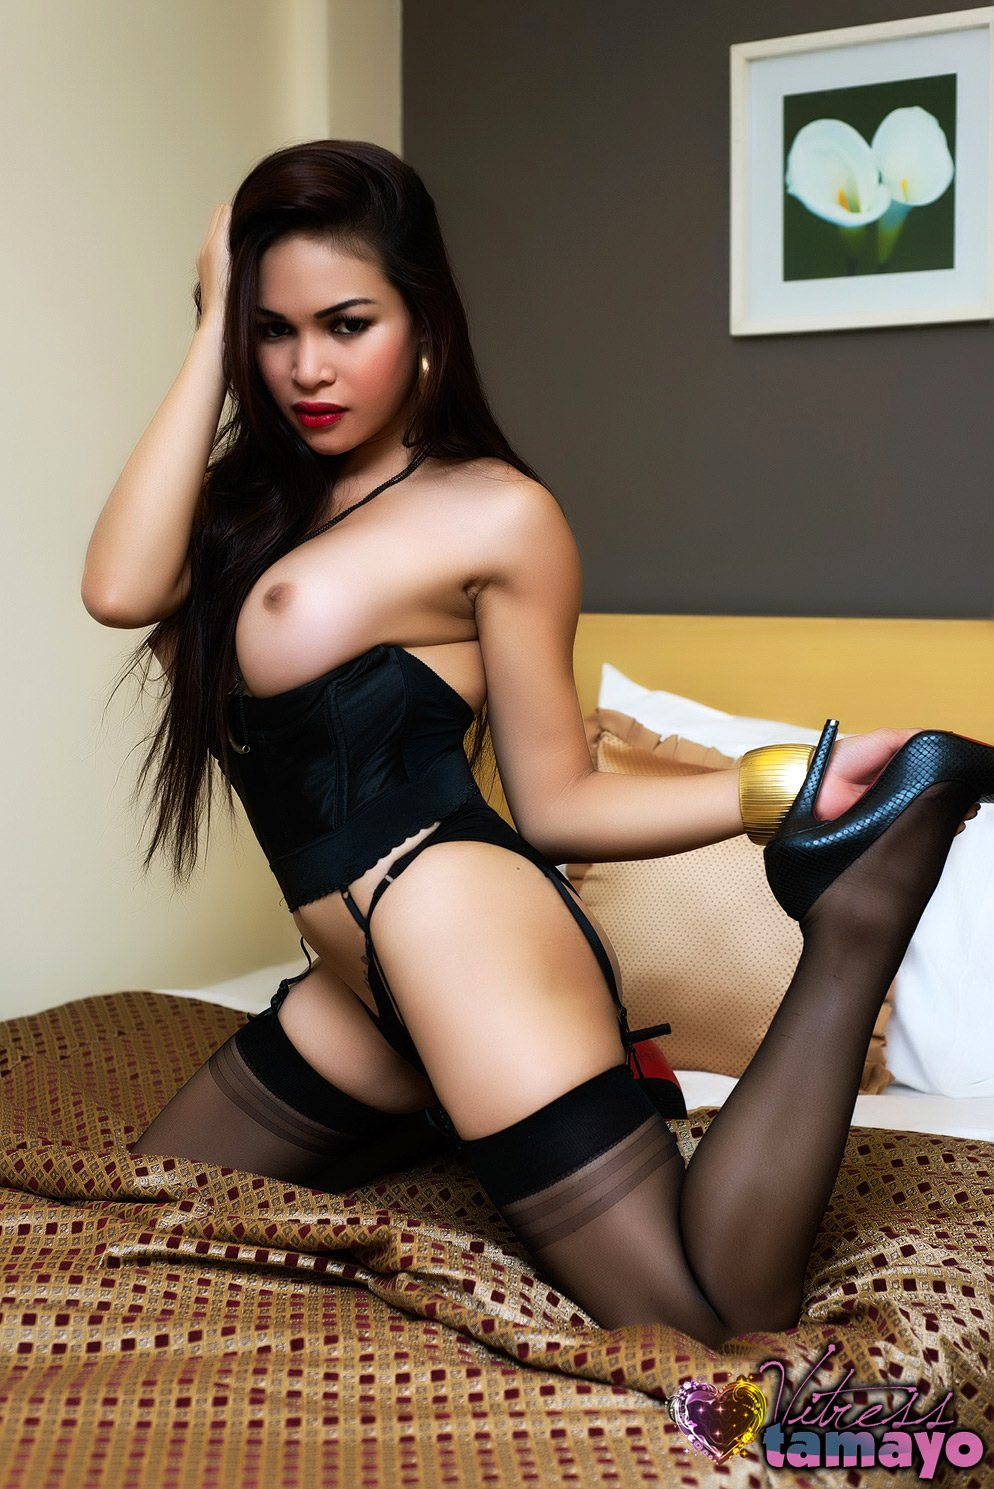 Curvy Japanese Asian Tgirl Cums Ins Stockings Beautiful Chinese Girl